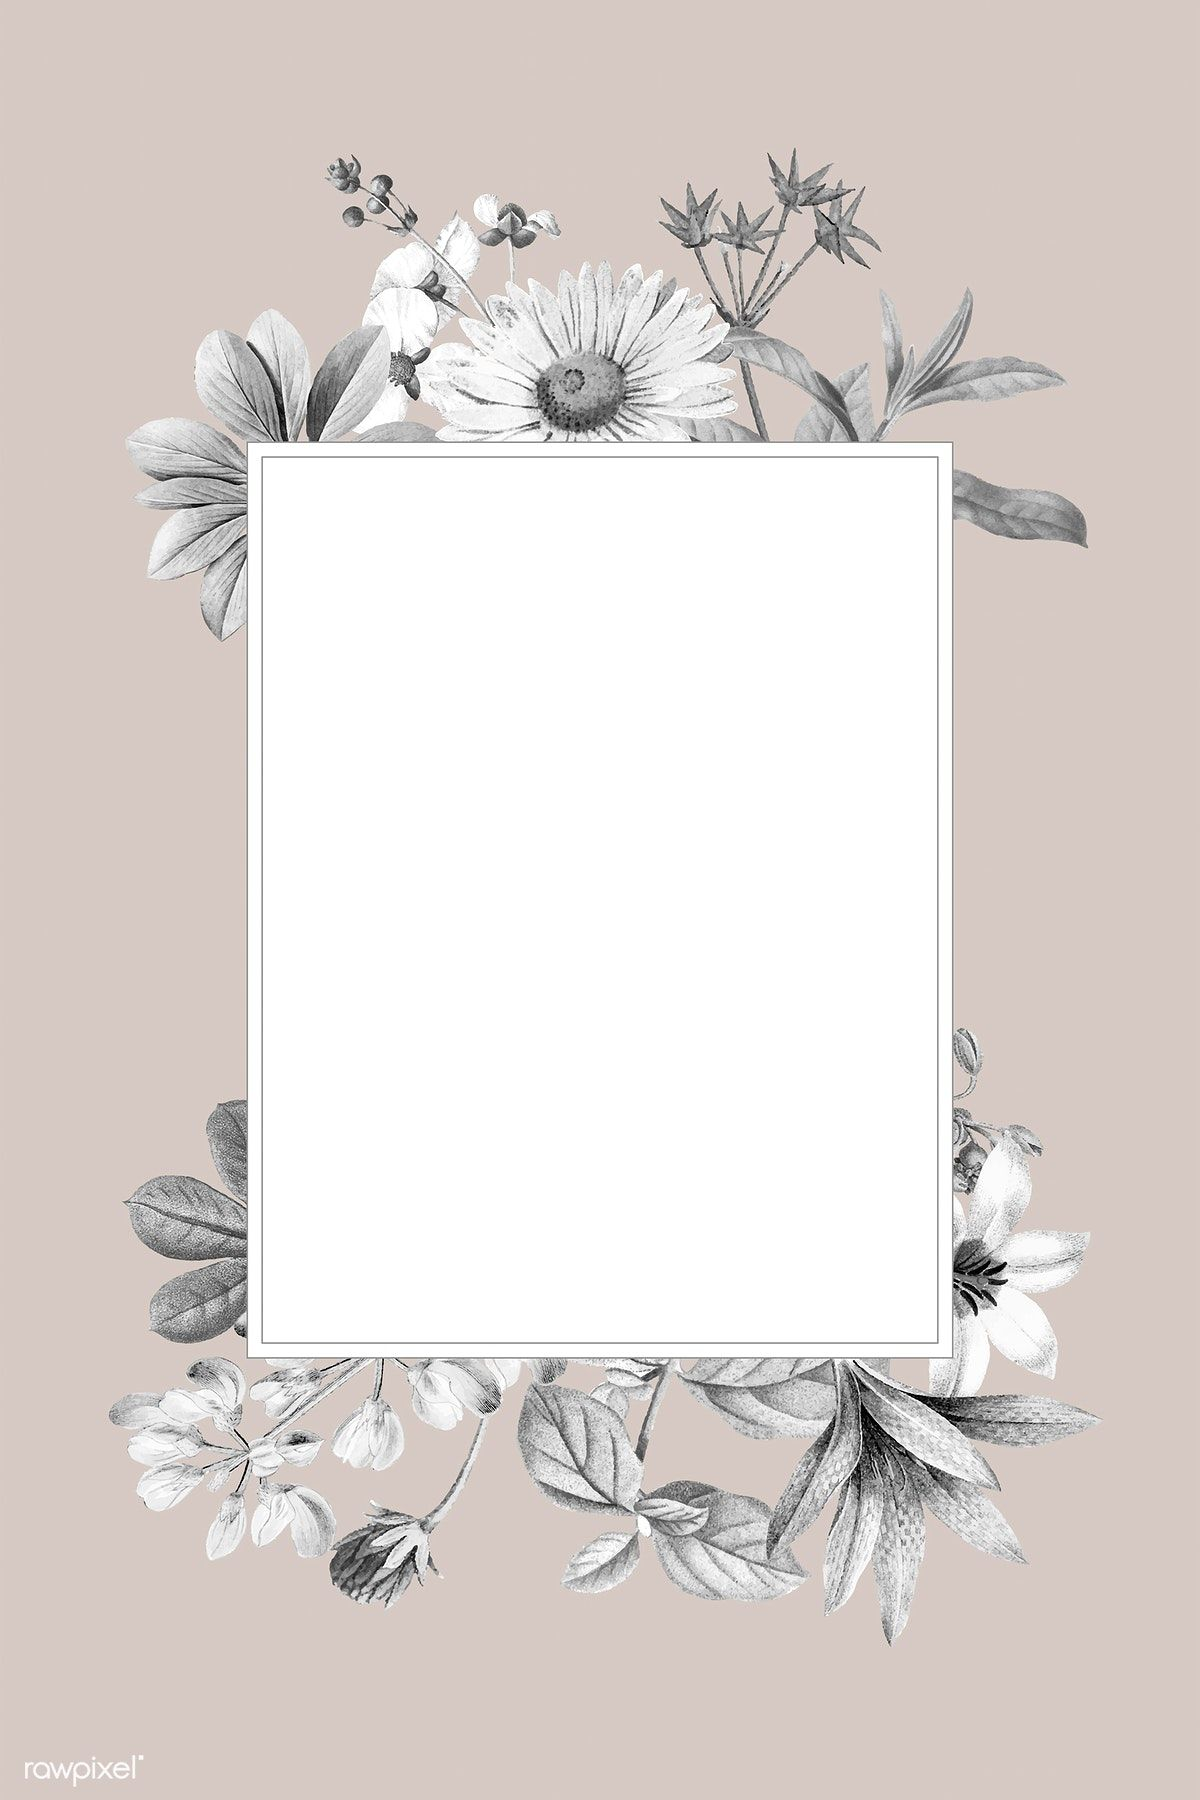 Download premium vector of Blank floral frame design